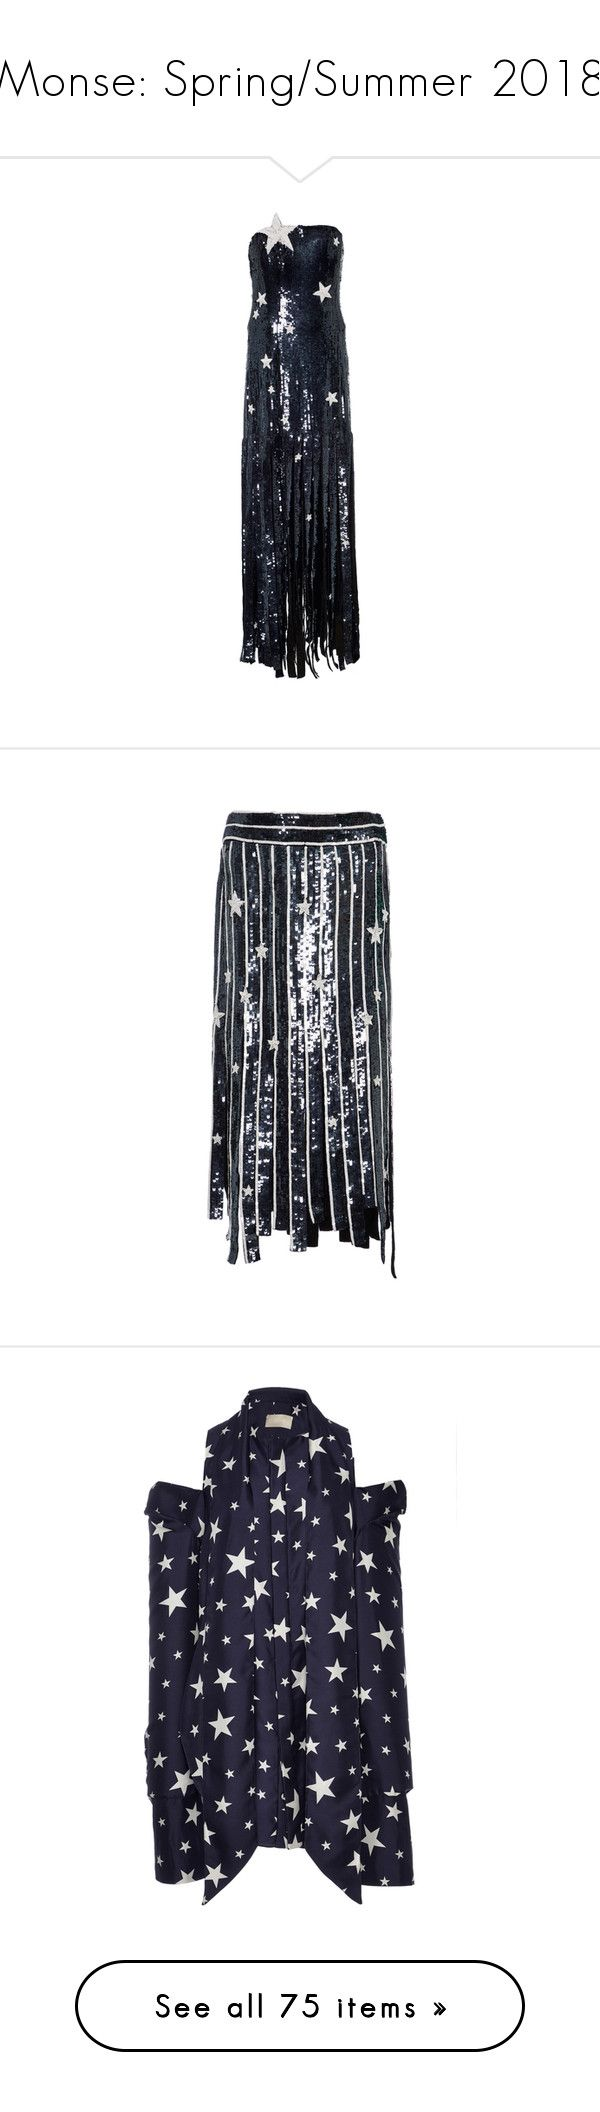 """""""Monse: Spring/Summer 2018"""" by livnd ❤ liked on Polyvore featuring Monse, livndfashion, livndmonse, springsummer2018, navy, skirts, navy blue sequin skirt, sequin skirt, striped skirt and striped sequin skirt"""